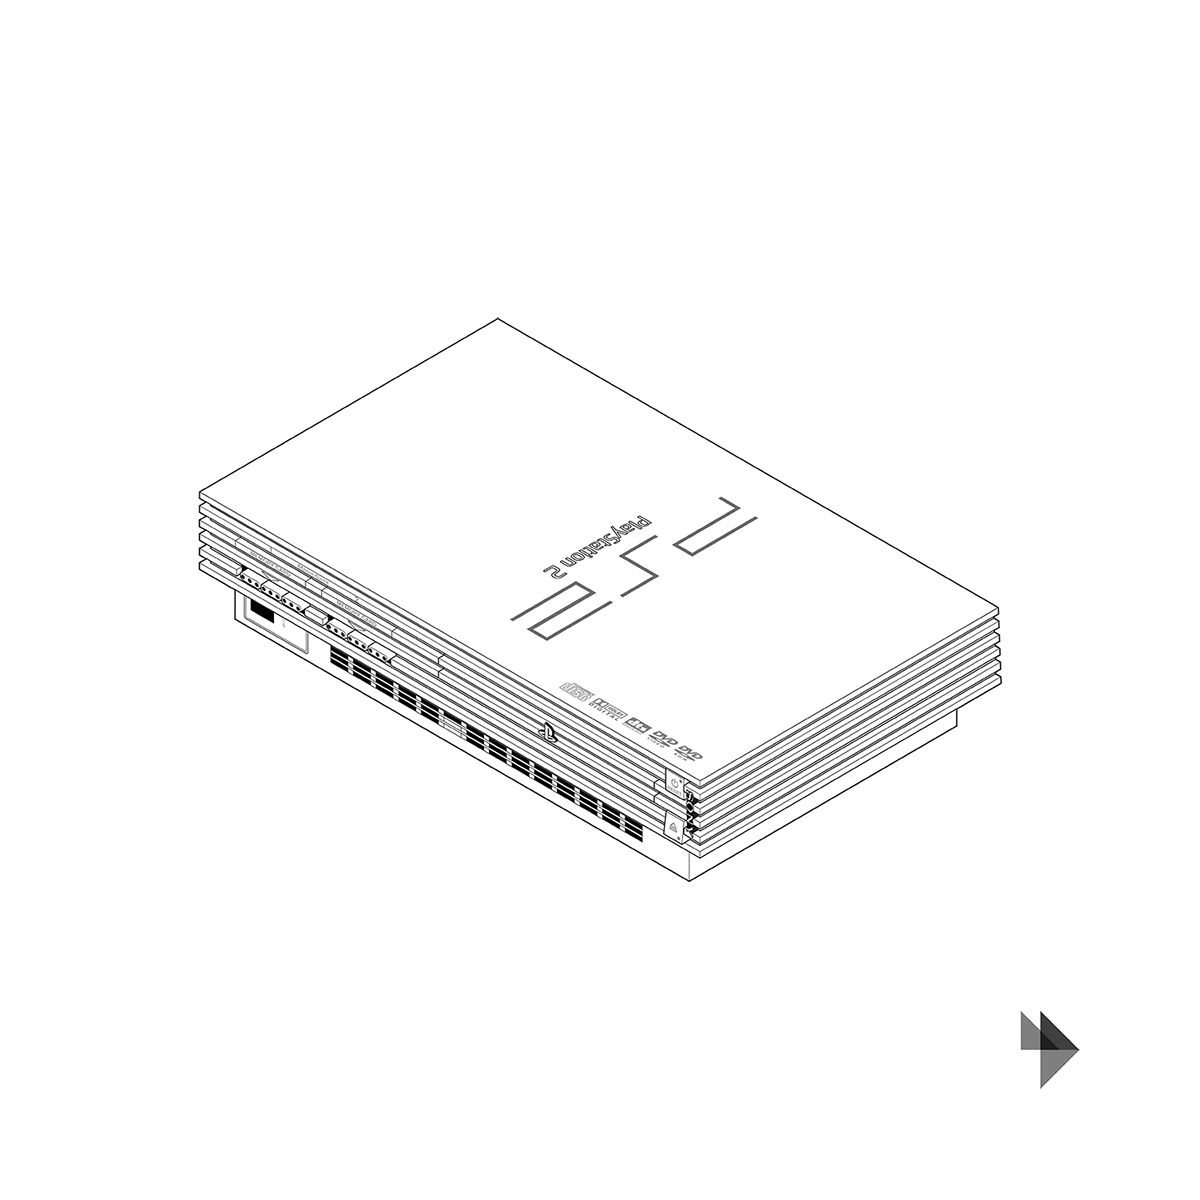 Evolution of the Sony PlayStation on Behance